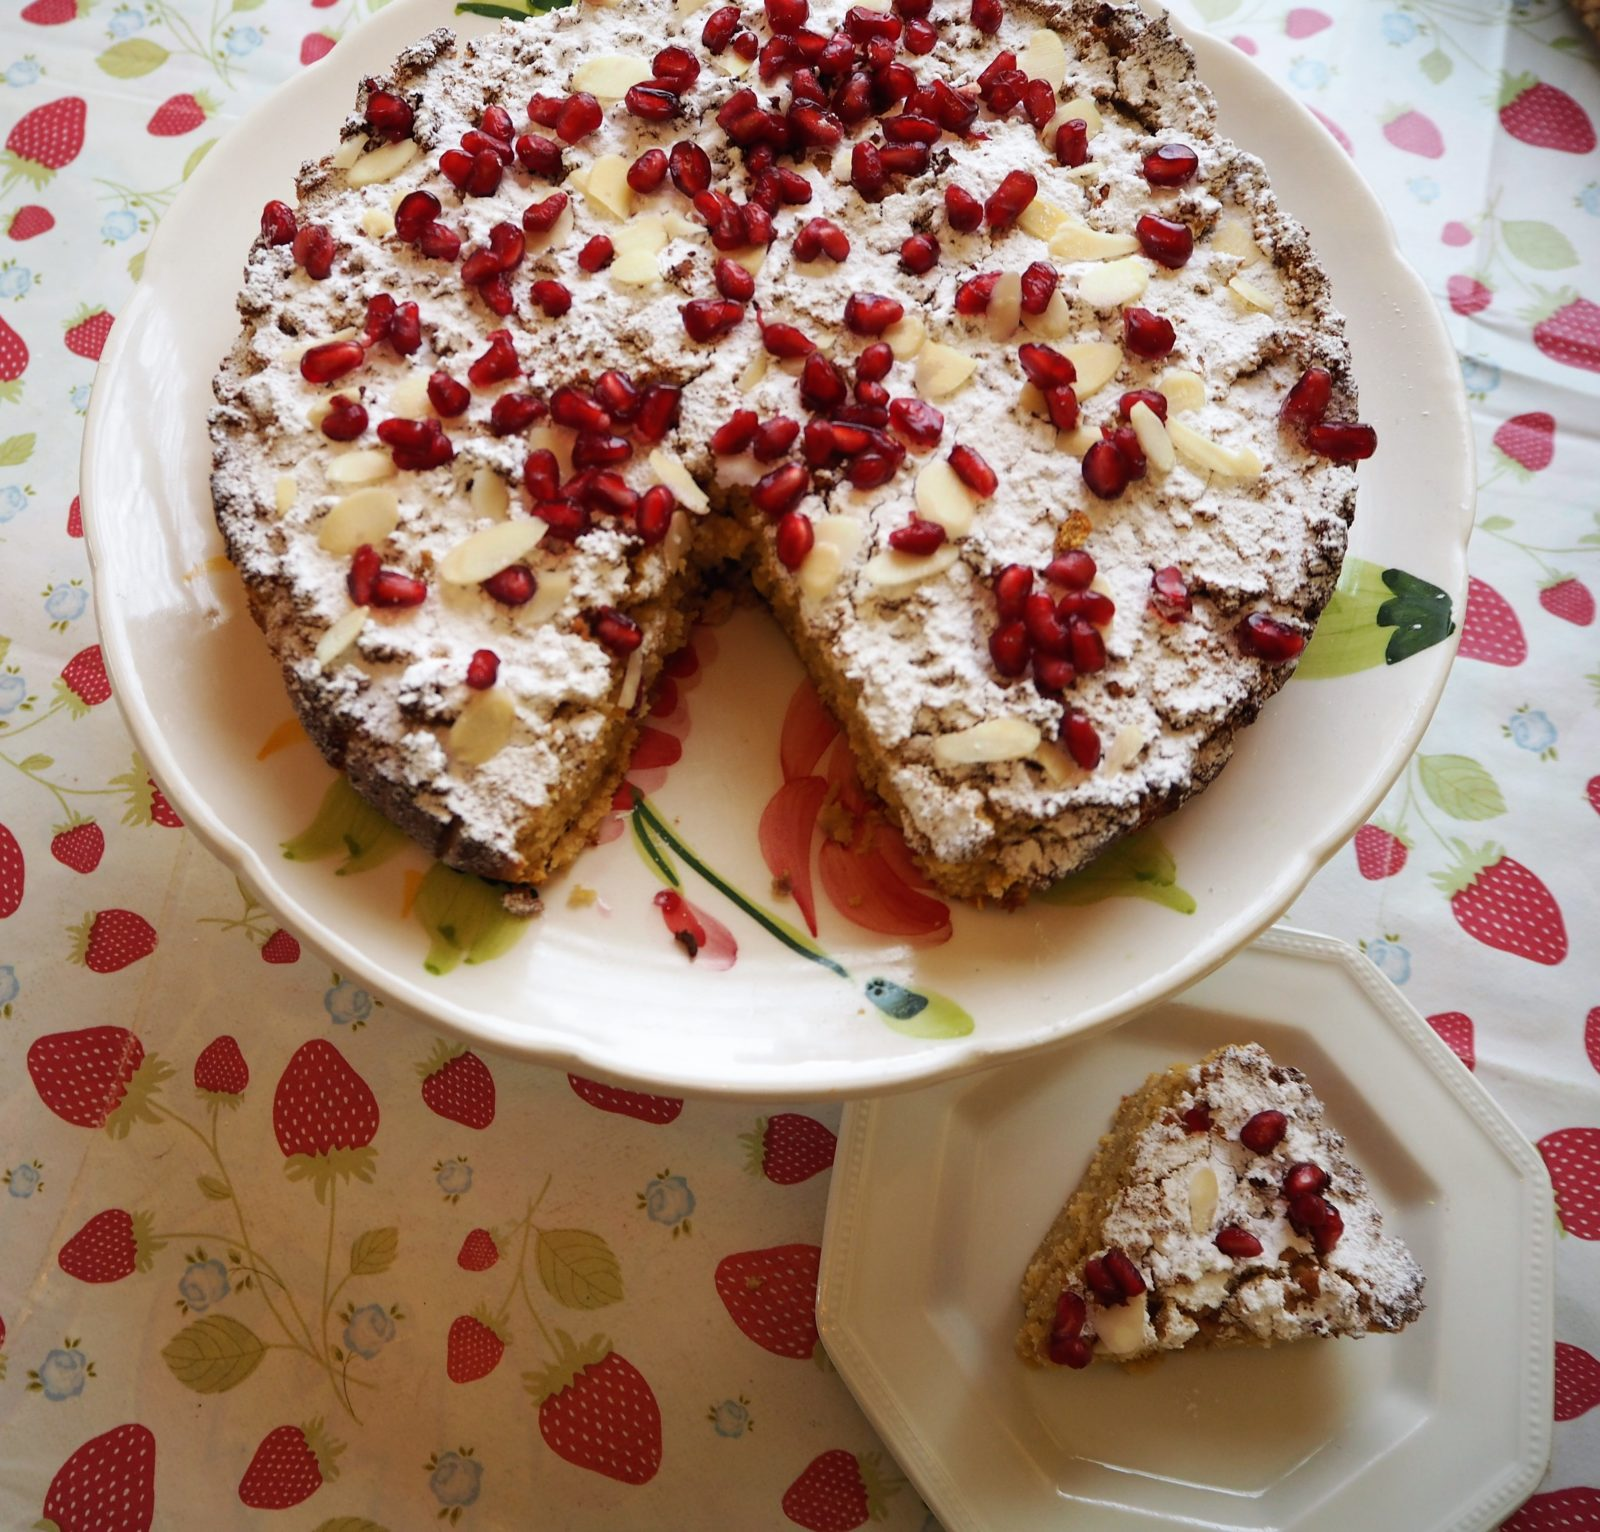 Clementine and Pomegranate Cake